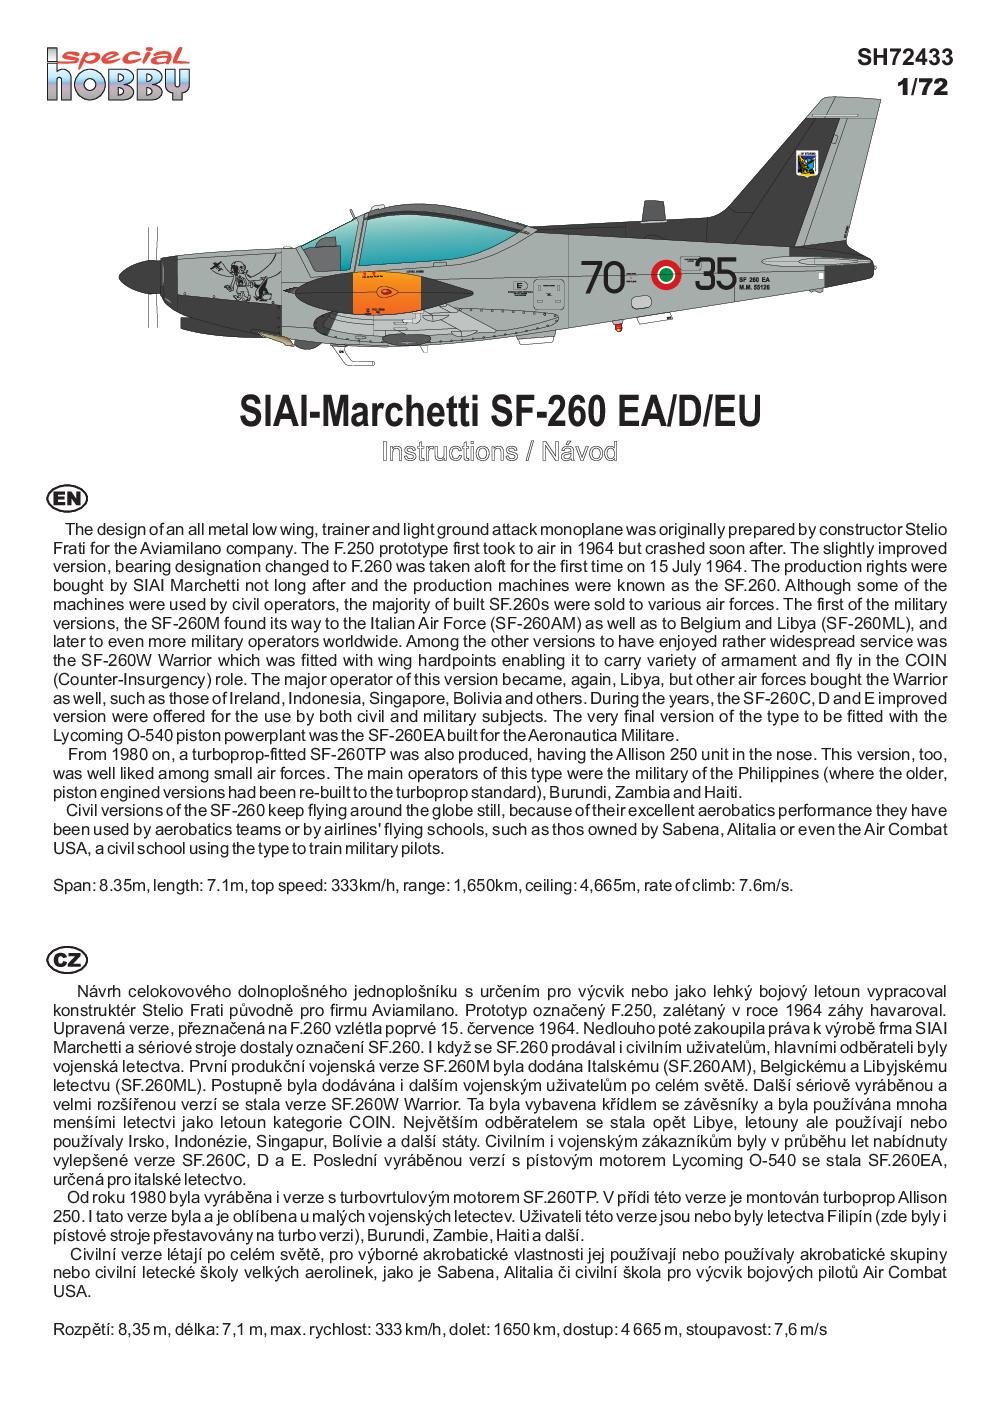 Special-Hobby-72433-SIAI-Marchetti-SF-260-Late-bulged-Canopy-Bauanleitung-1 SIAI Marchetti SF 260 Late Bulged Canopy in 1:72 Special Hobby # SH 72433